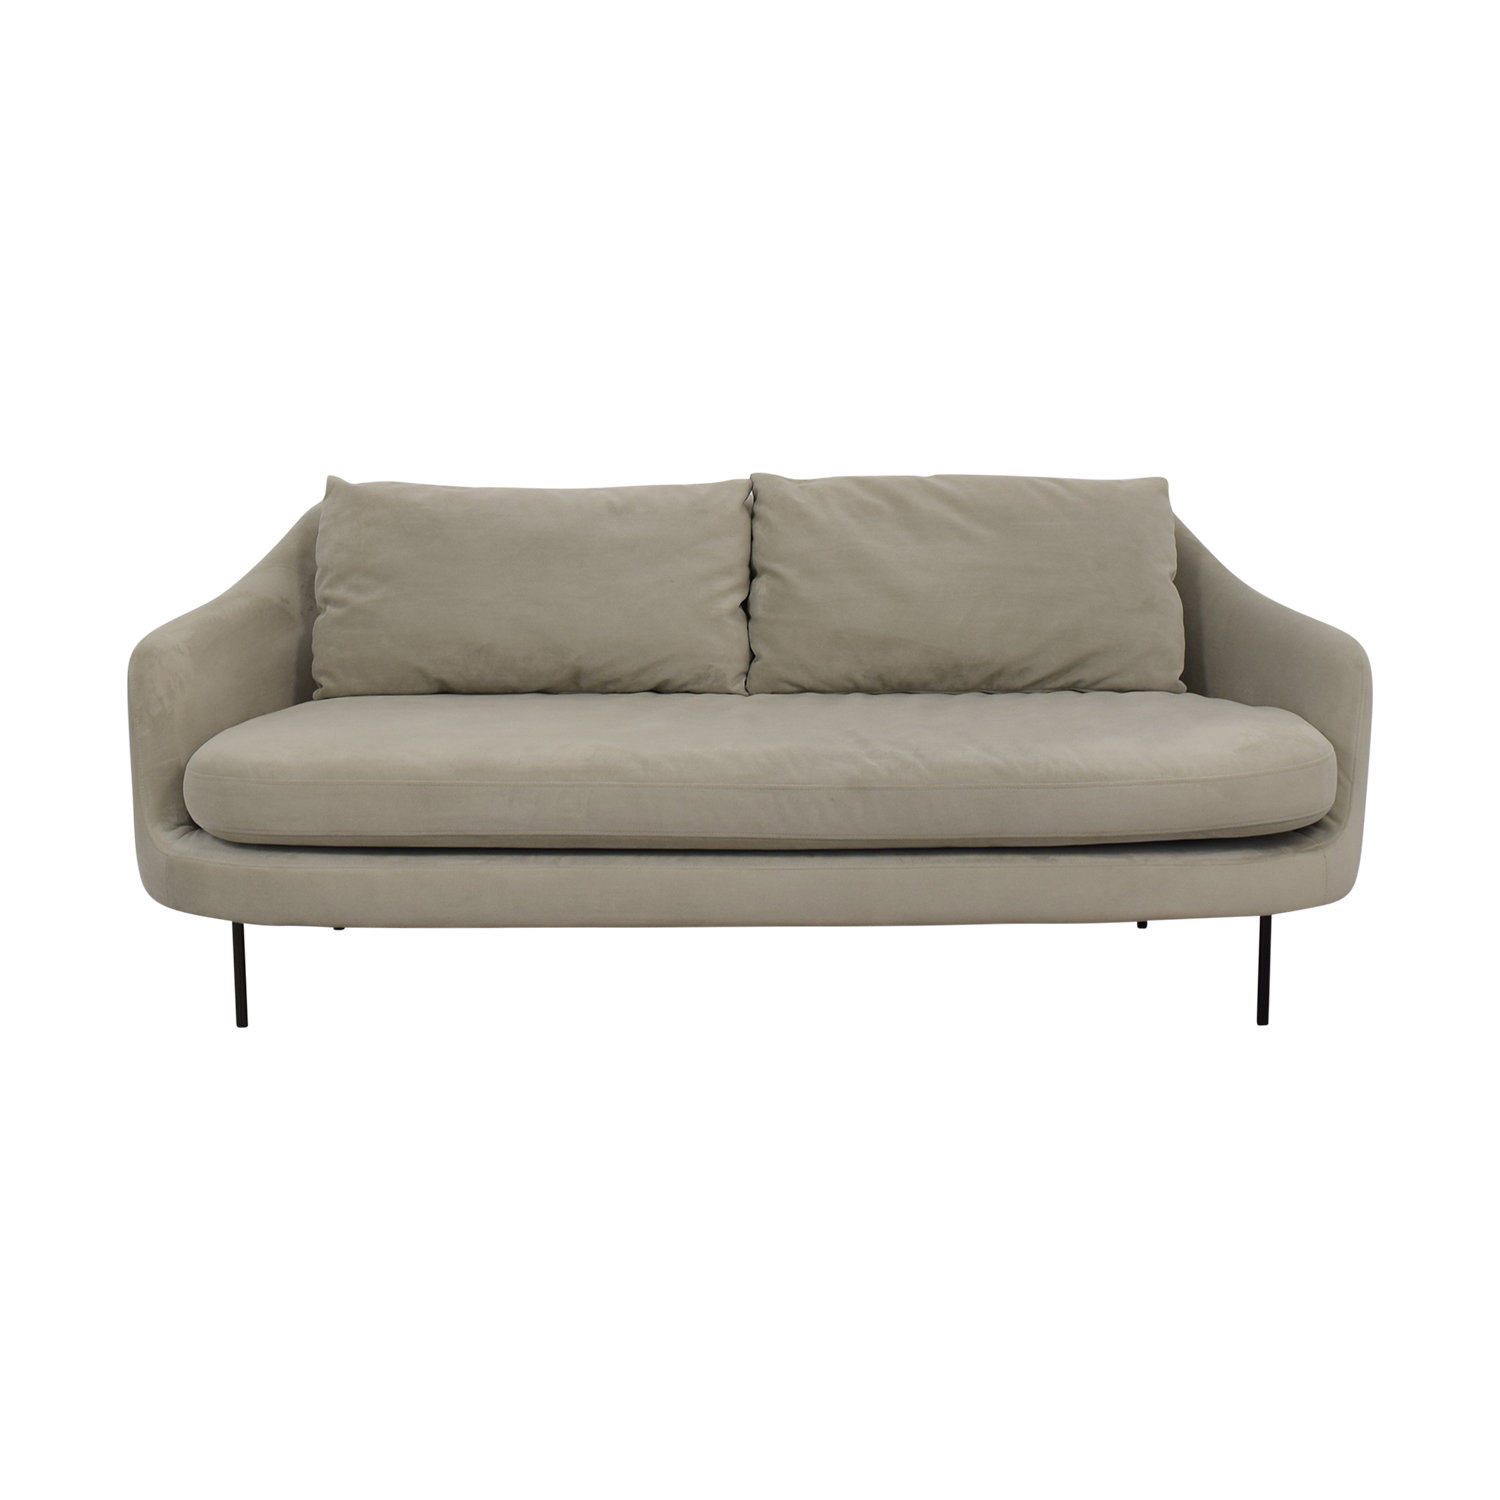 Beige Single Cushion Convex Couch coupon